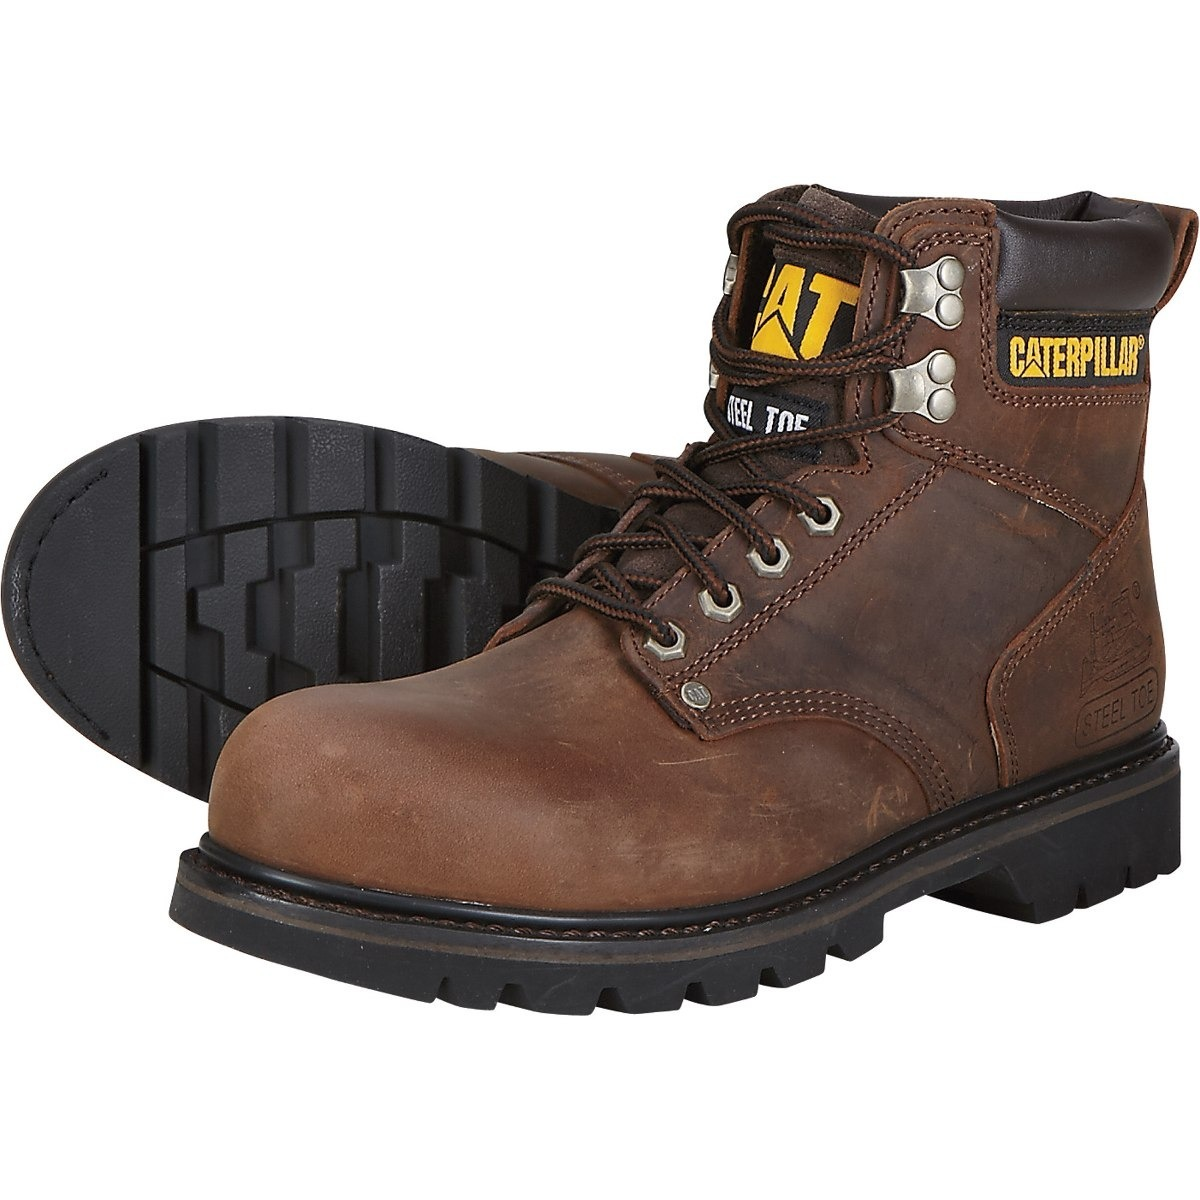 bota hombre second shift caterpillar con casquillo unico par. Cargando zoom. 5e455c5d43c